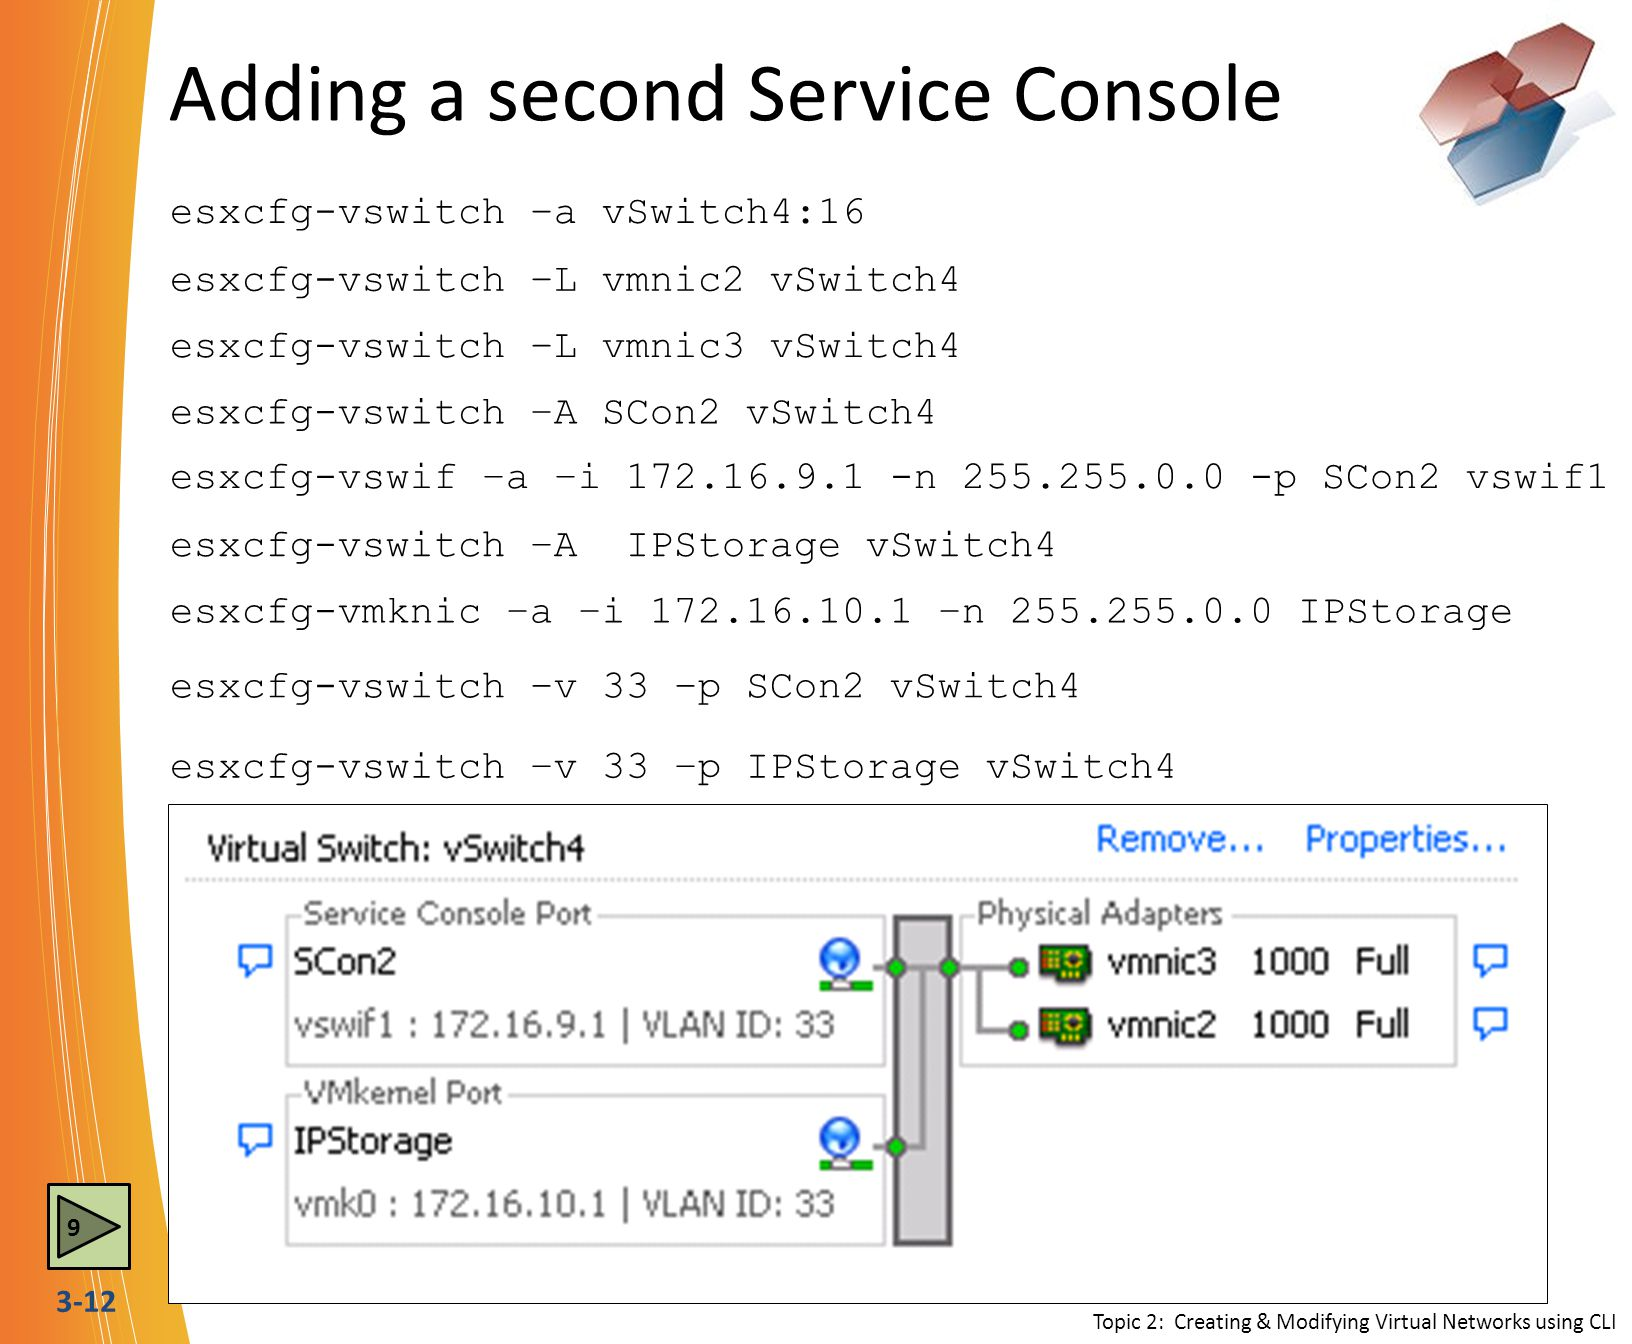 3-12 Adding a second Service Console esxcfg-vswitch –L vmnic2 vSwitch4 esxcfg-vswitch –L vmnic3 vSwitch4 esxcfg-vswif –a –i 172.16.9.1 -n 255.255.0.0